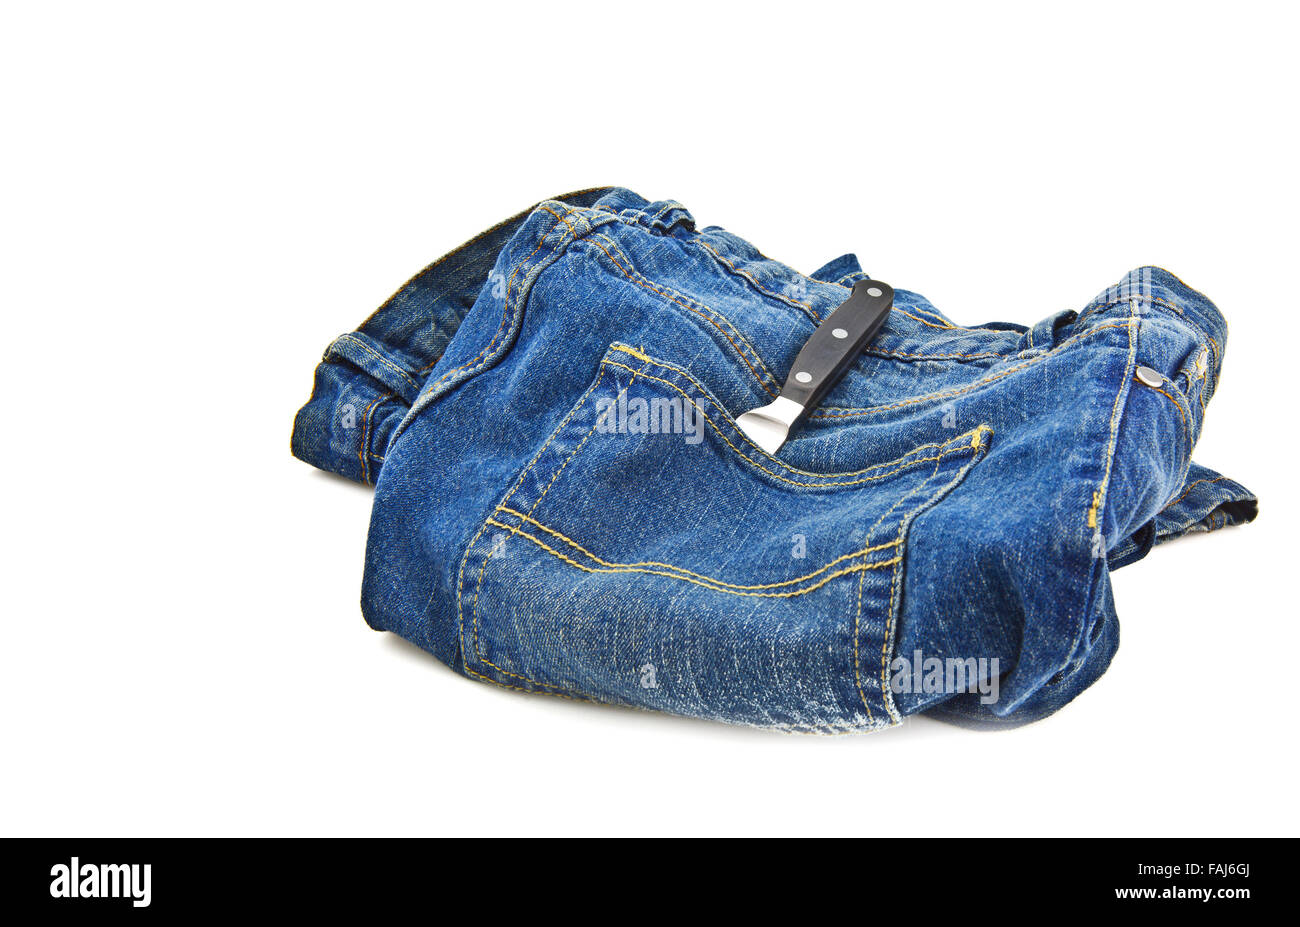 Blue jeans pocket with kitchen knife on white background - Stock Image